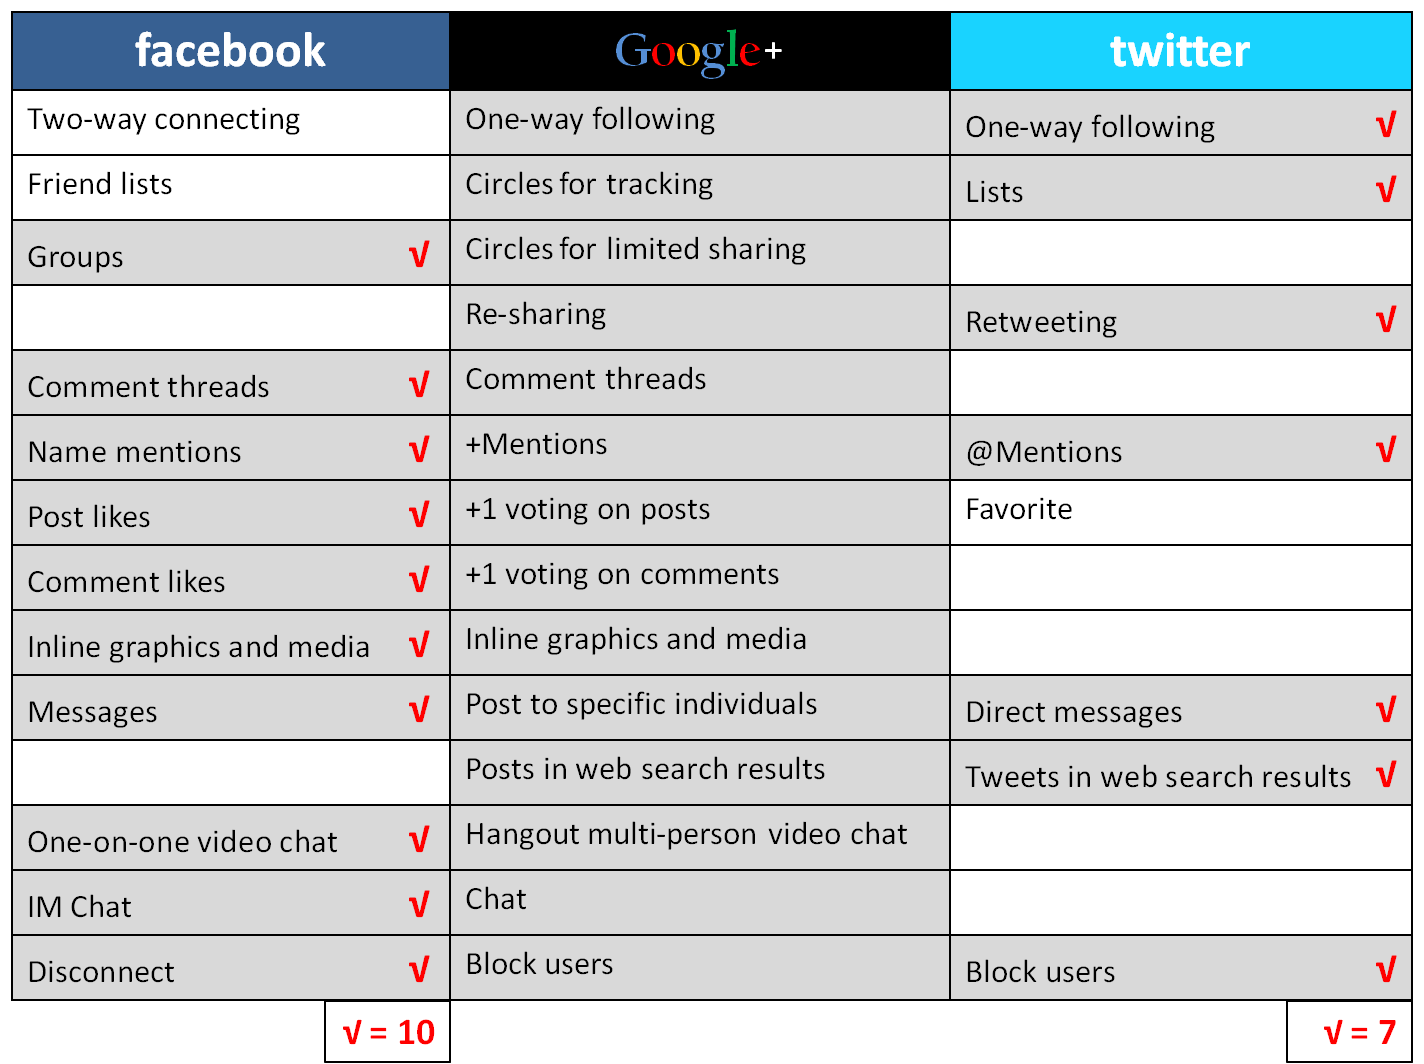 facebook vs twitter analysis Properly-shaped posts on twitter and facebook have potential to heighten your popularity and grow your brand,  analysis by dave smith @redletterdave.